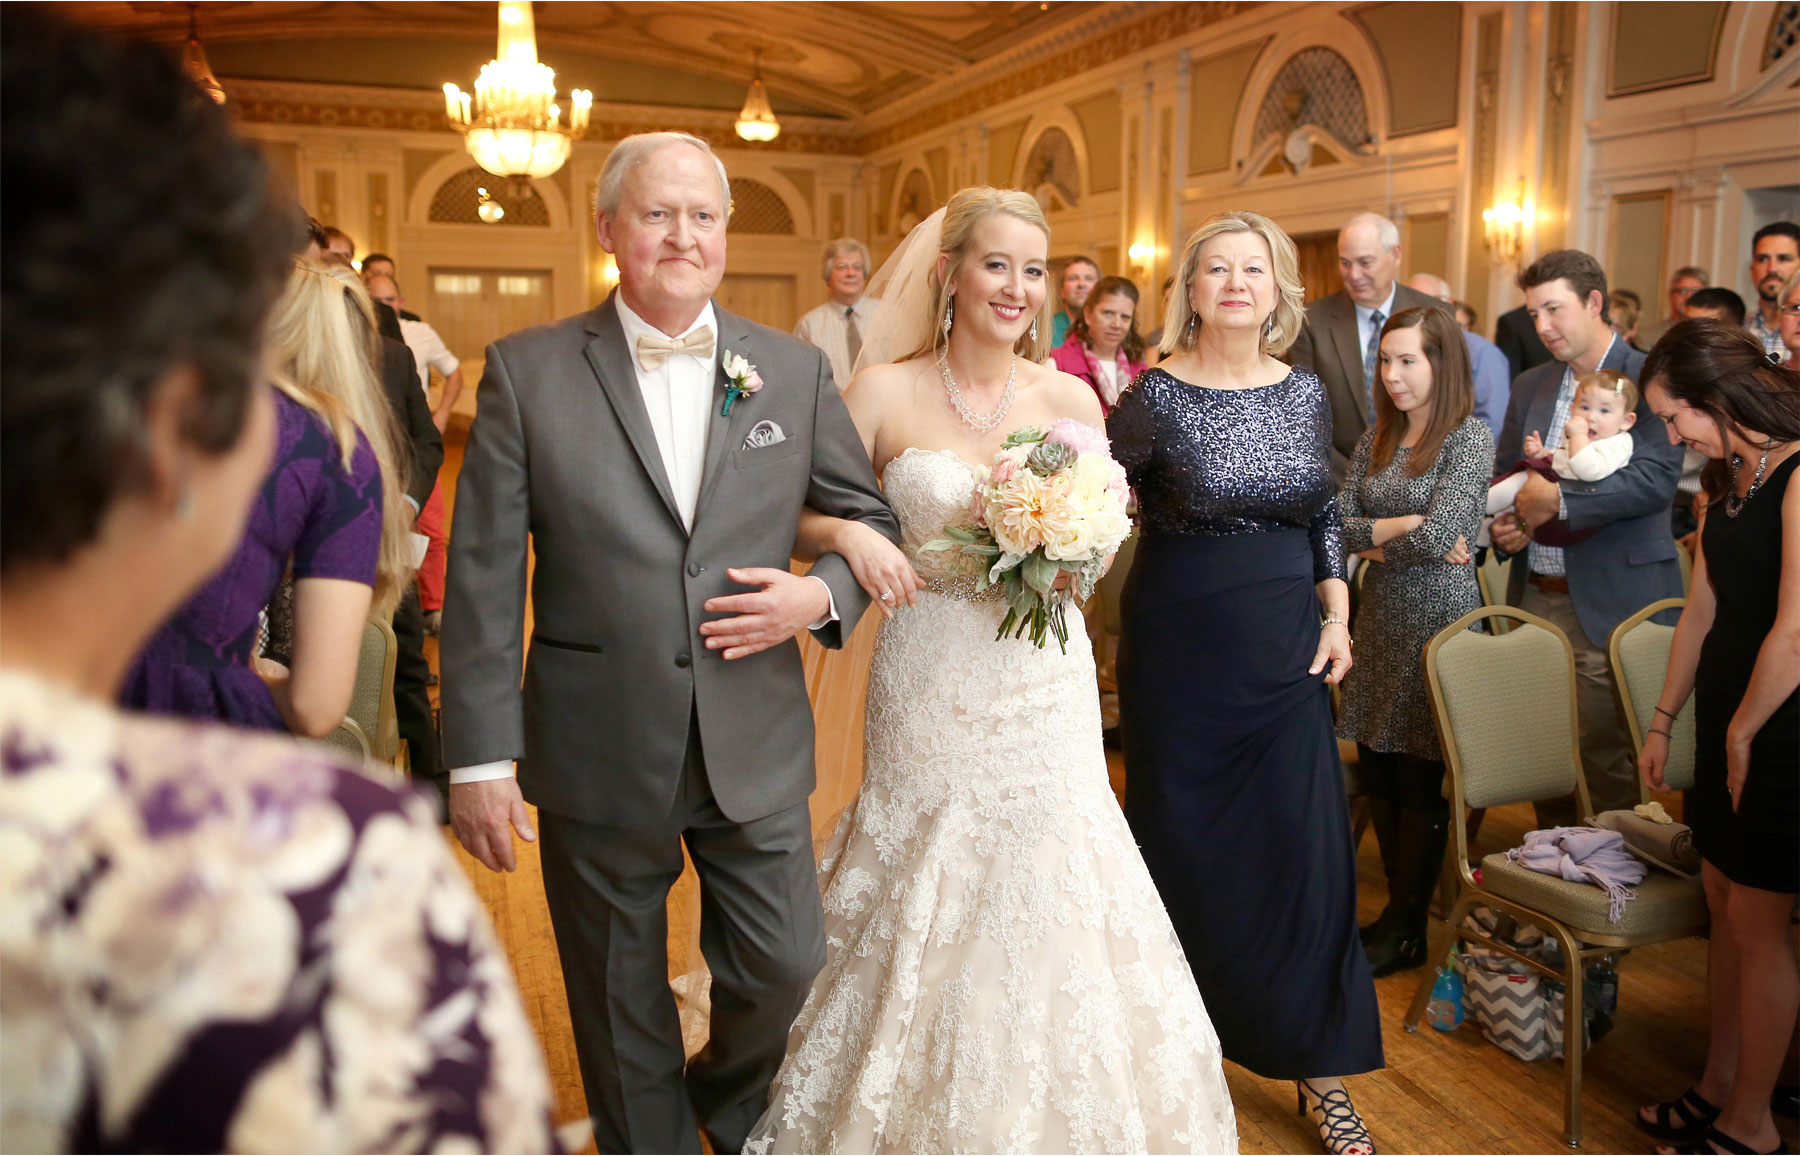 14-Duluth-Minnesota-Wedding-Photographer-by-Andrew-Vick-Photography-Fall-Autumn-Greysolon-Ballroom-Ceremony-Bride-Father-Mother-Parents-Processional-Molly-and-Carson.jpg